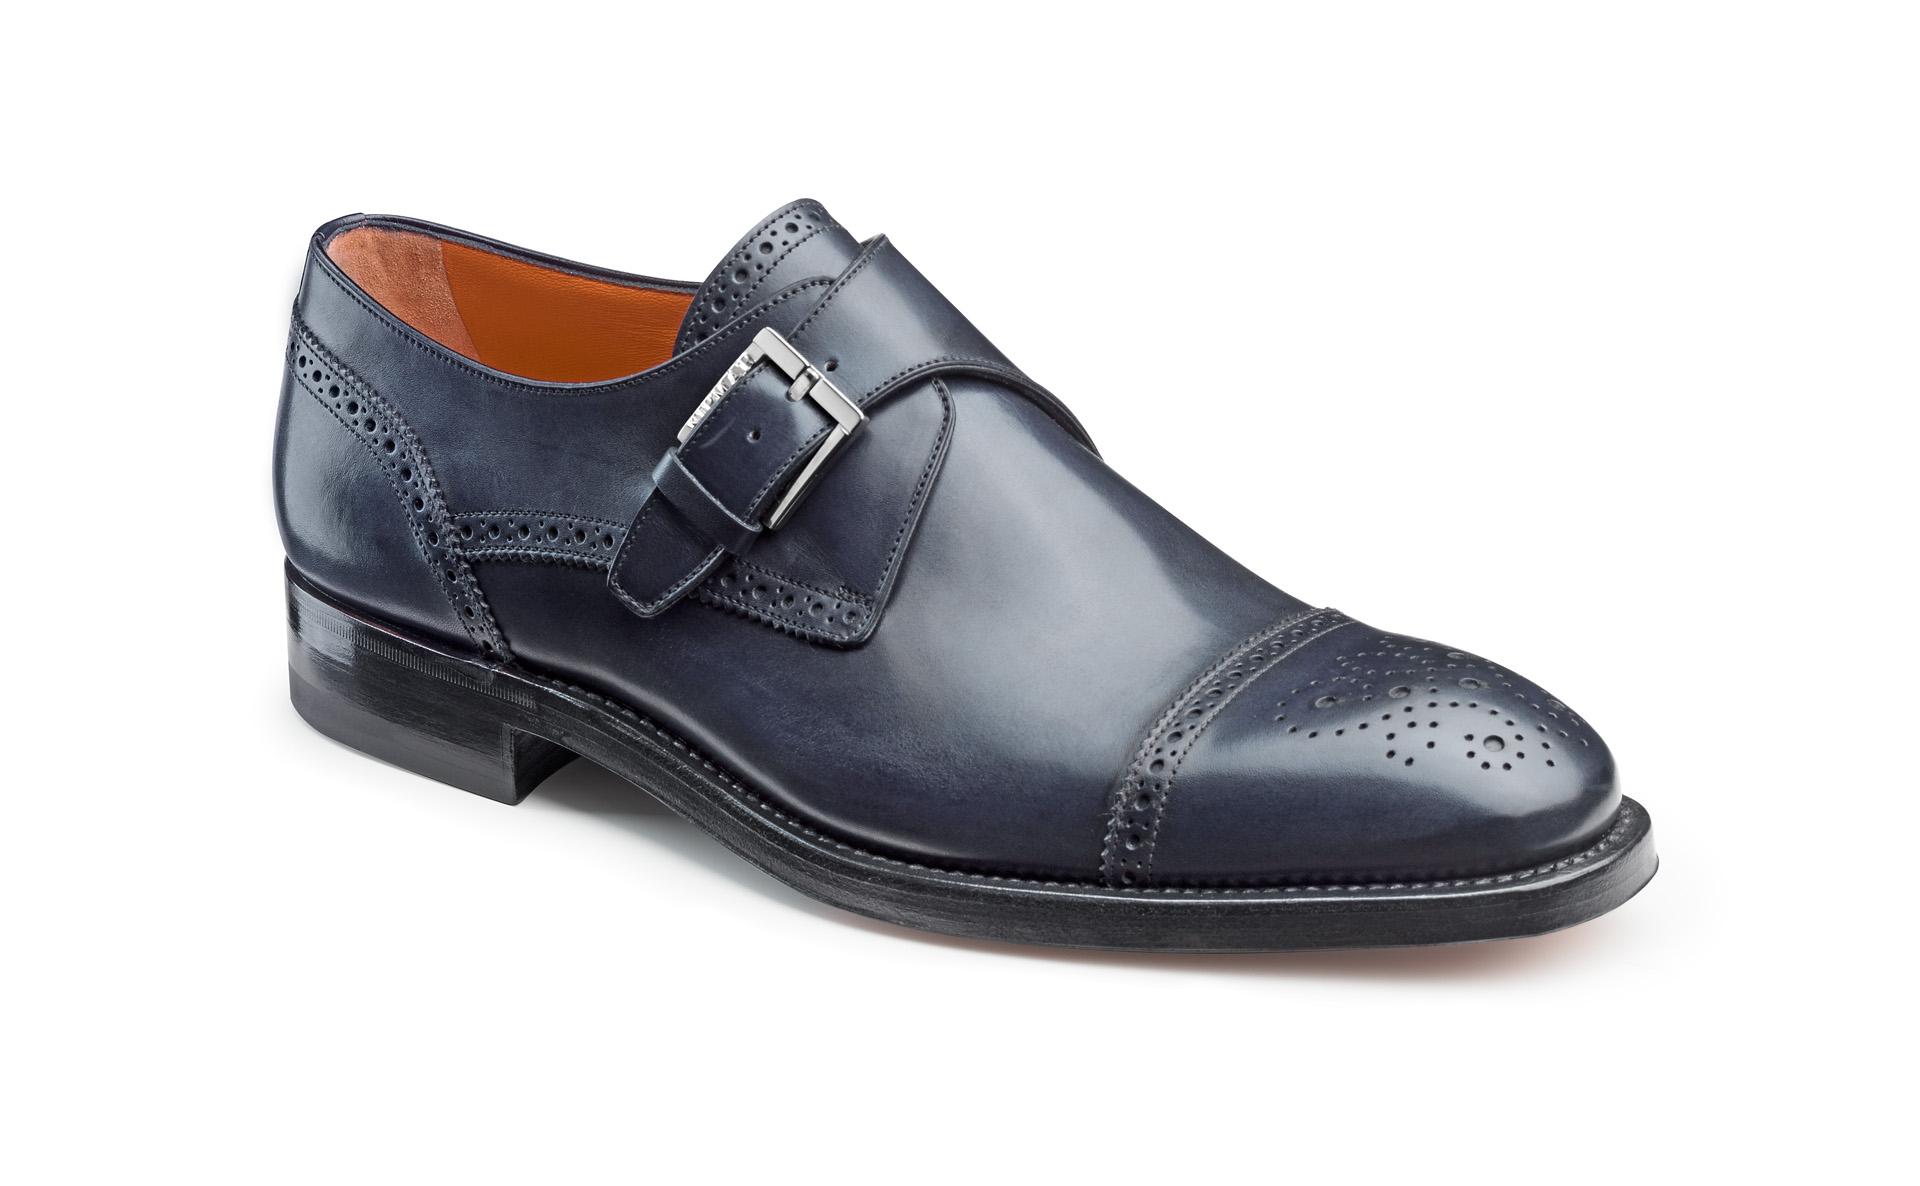 Half Brogue Buckle Shoes